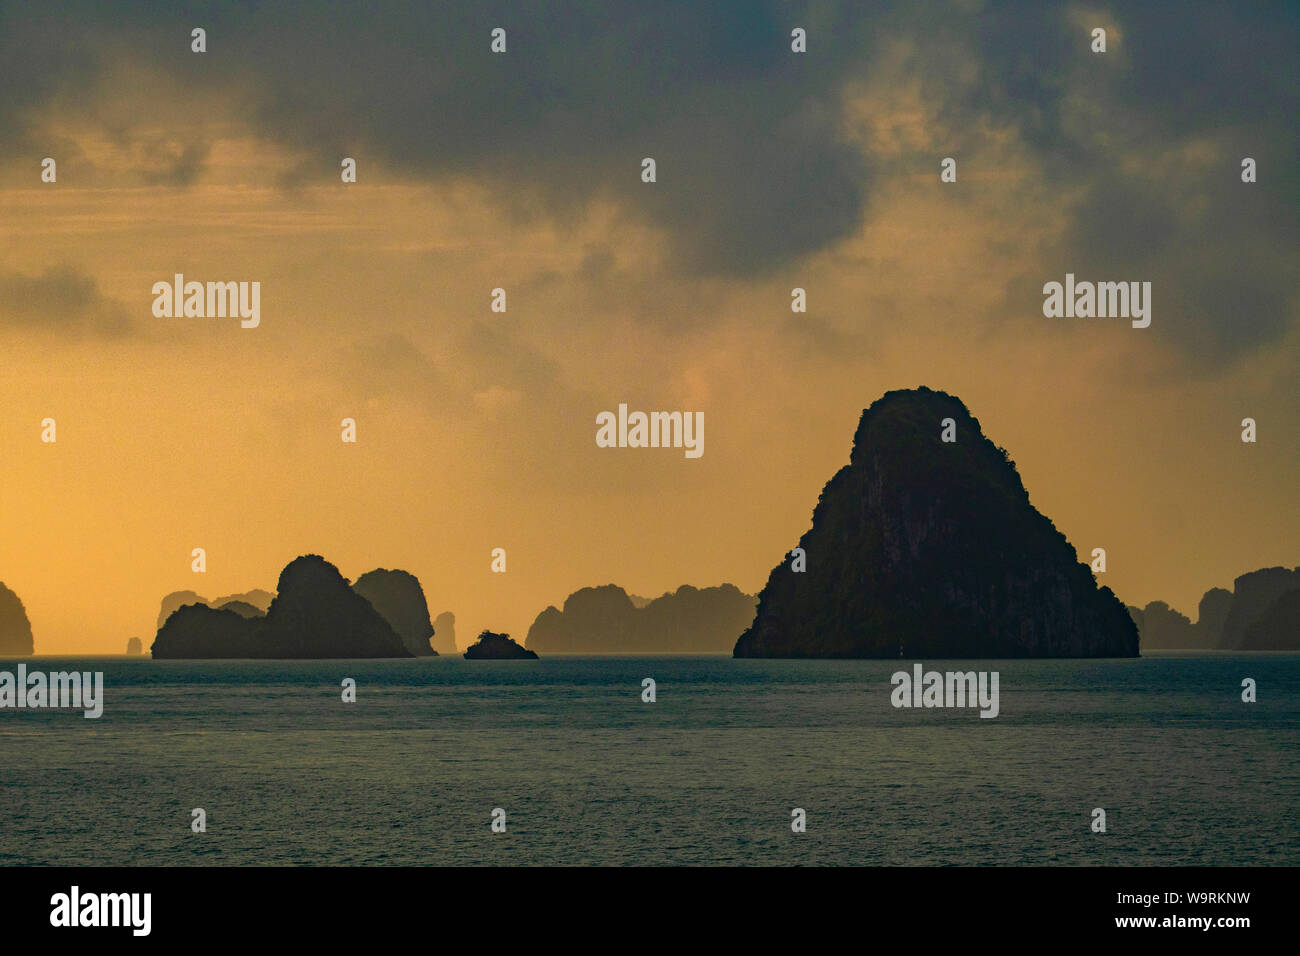 Asia, Asien, Southeast Asia, Vietnam,Quang Ninh Province, Ha Long Bay *** Local Caption *** Stock Photo